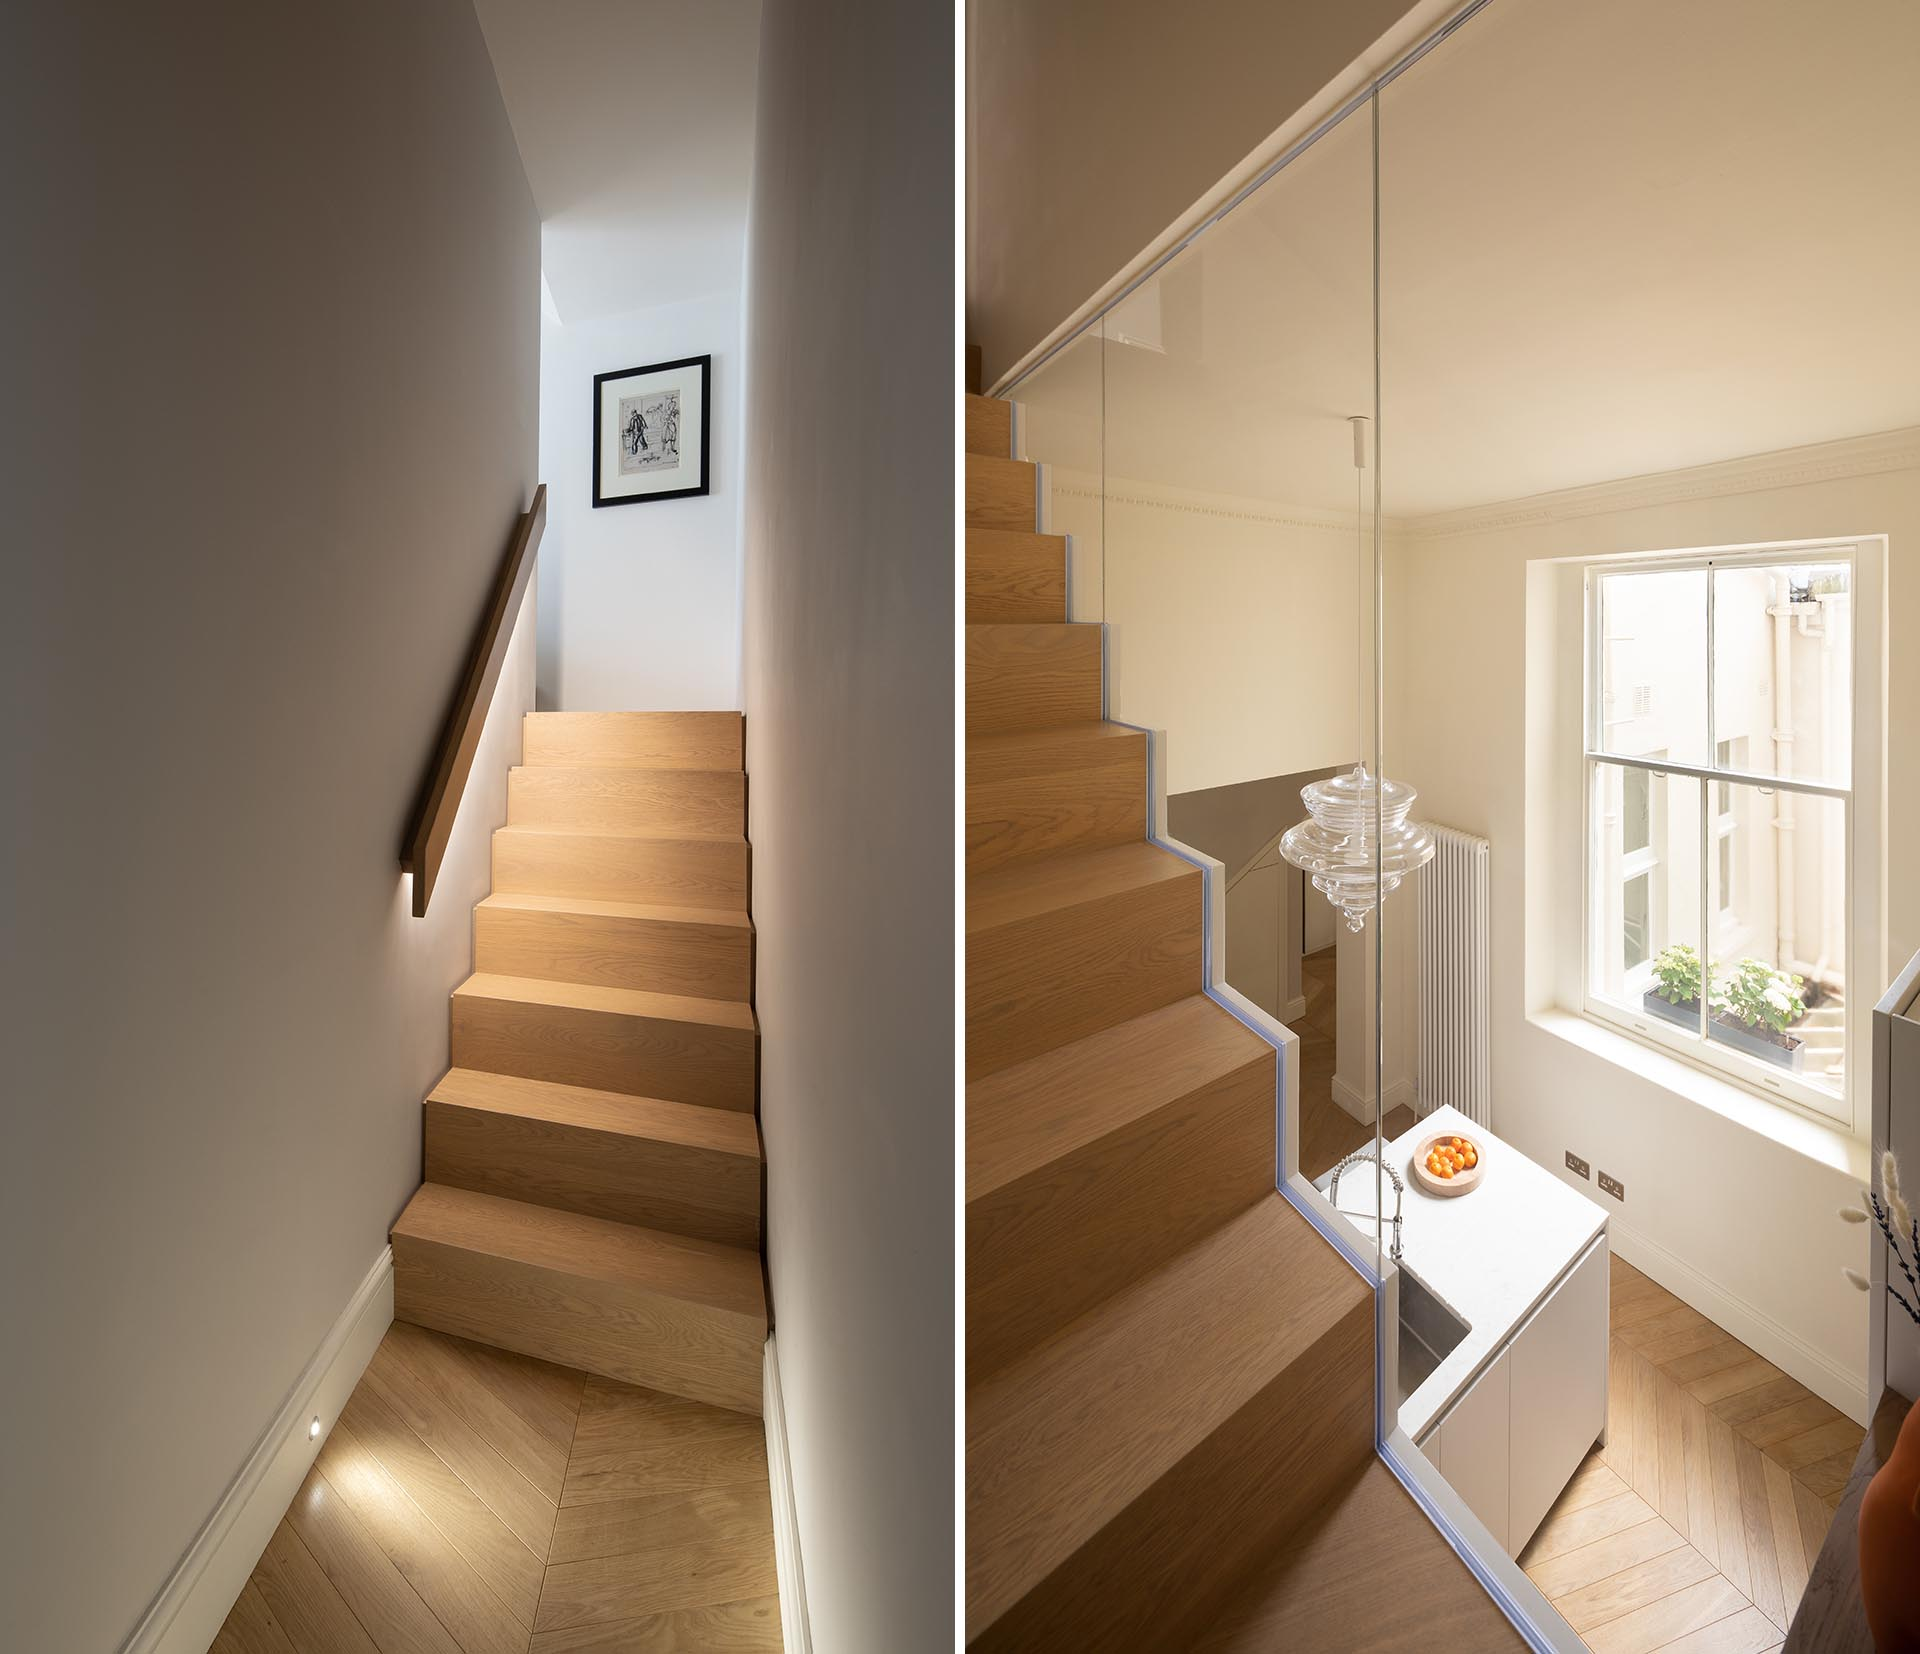 Oak stairs with hidden lighting under the handrail and a window that looks over the kitchen.